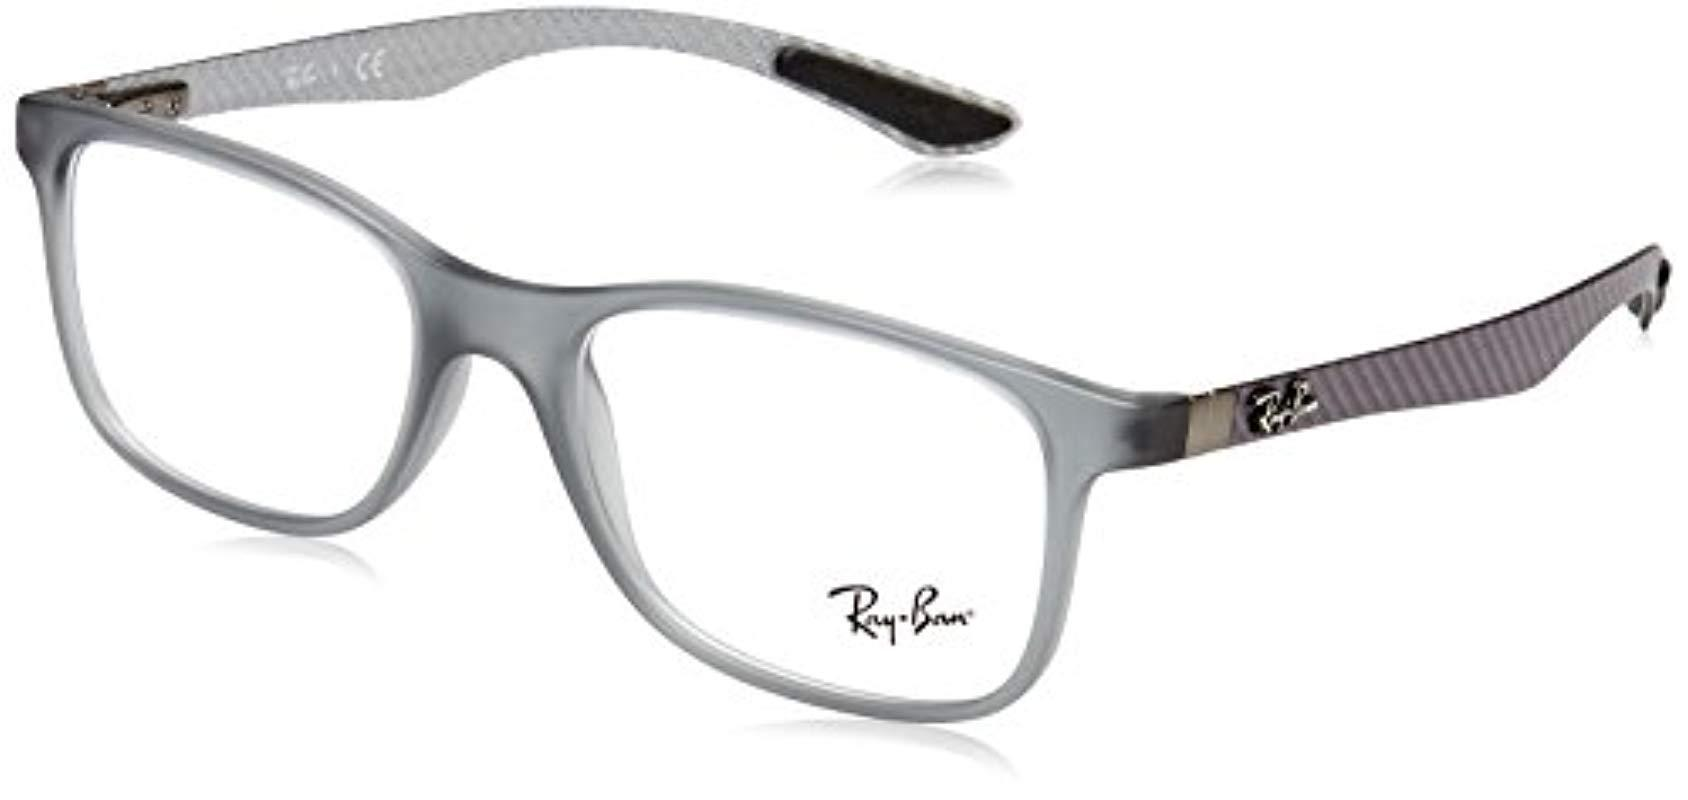 f5524e87c3 Ray-Ban. Men s Gray 0rx 8903 5244 55 Optical Frames ...